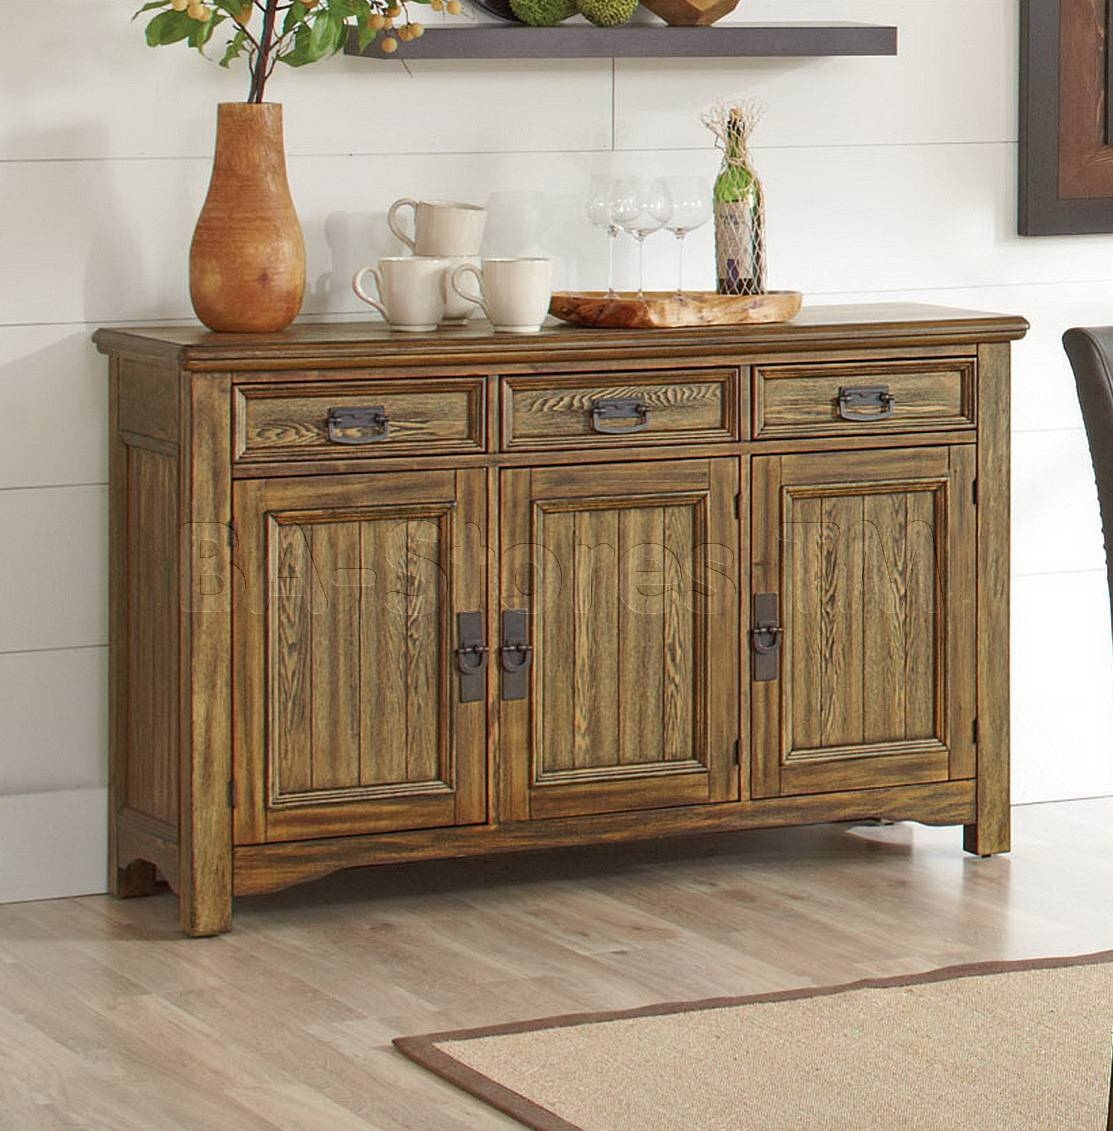 Kitchen Cabinet : Narrow Buffet Table 42 Inch Sideboard Modern regarding 42 Inch Sideboards (Image 8 of 15)